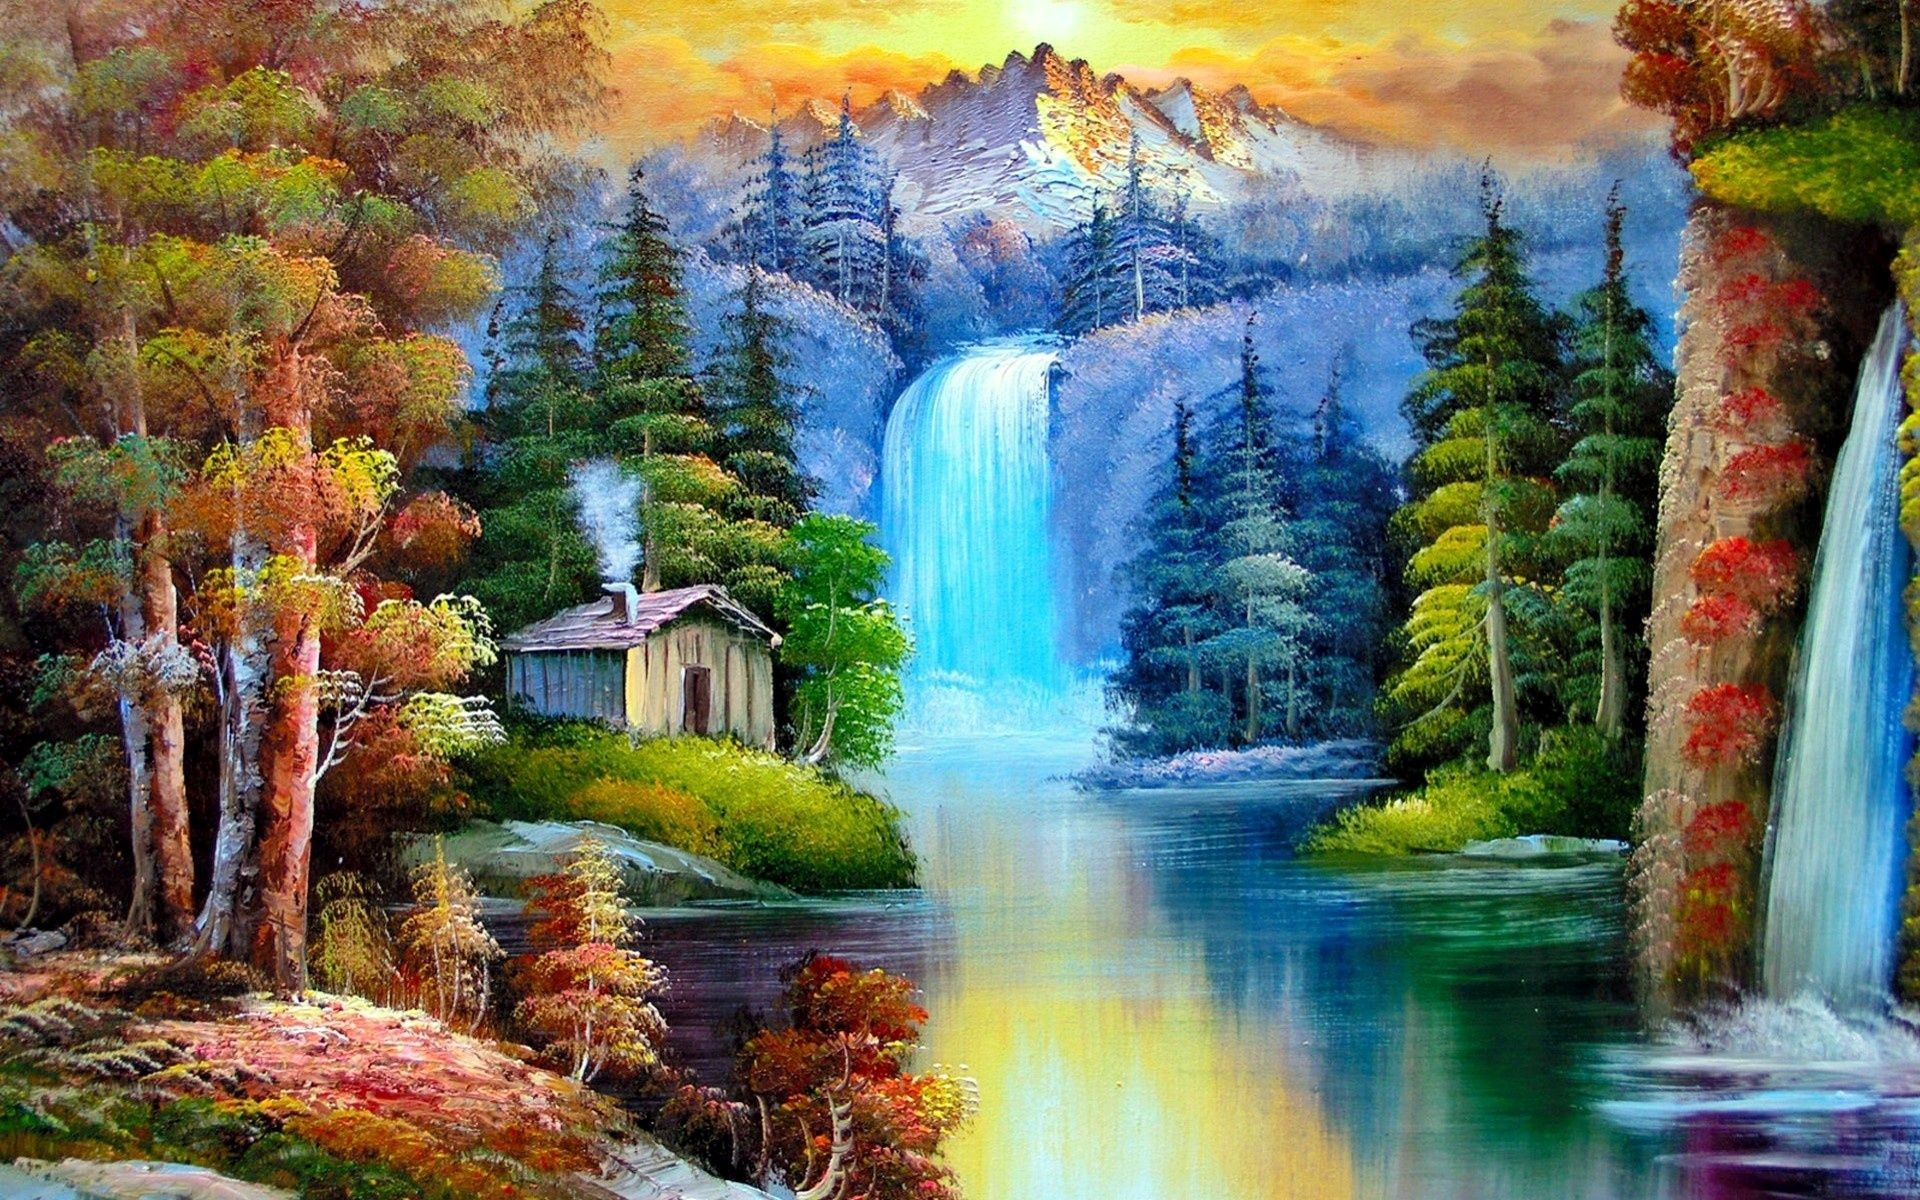 Http Wallsistah Com Wp Content Uploads 2013 10 Colorful Nature Painting 328280 Jpg Beautiful Paintings Of Nature Nature Paintings Landscape Paintings